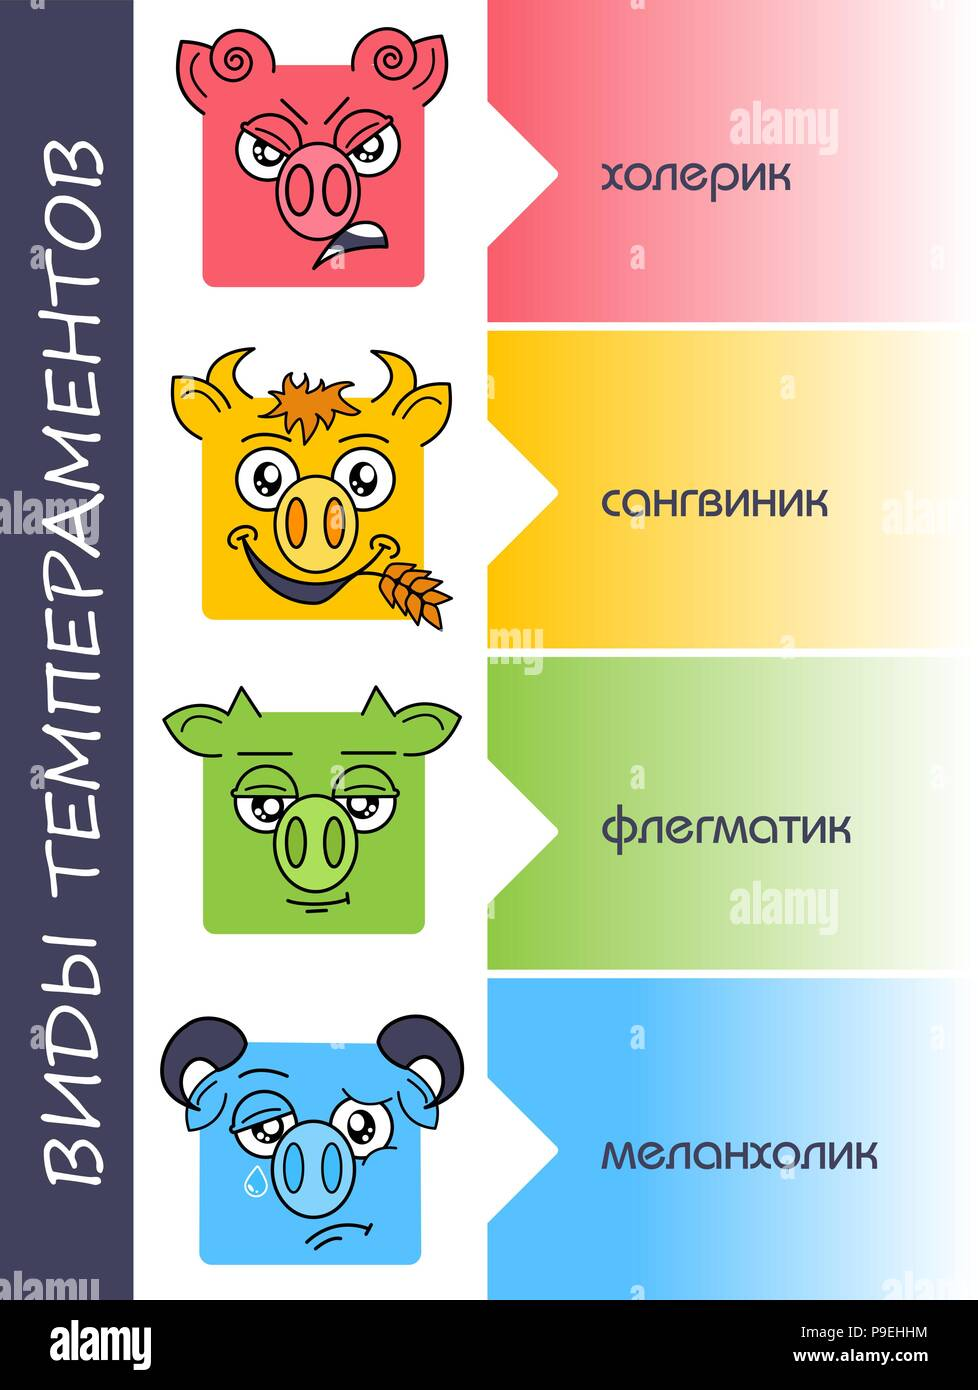 four temperaments set in Russian. transfer Choleric and melancholic, sanguine and phlegmatic personality types - Stock Vector